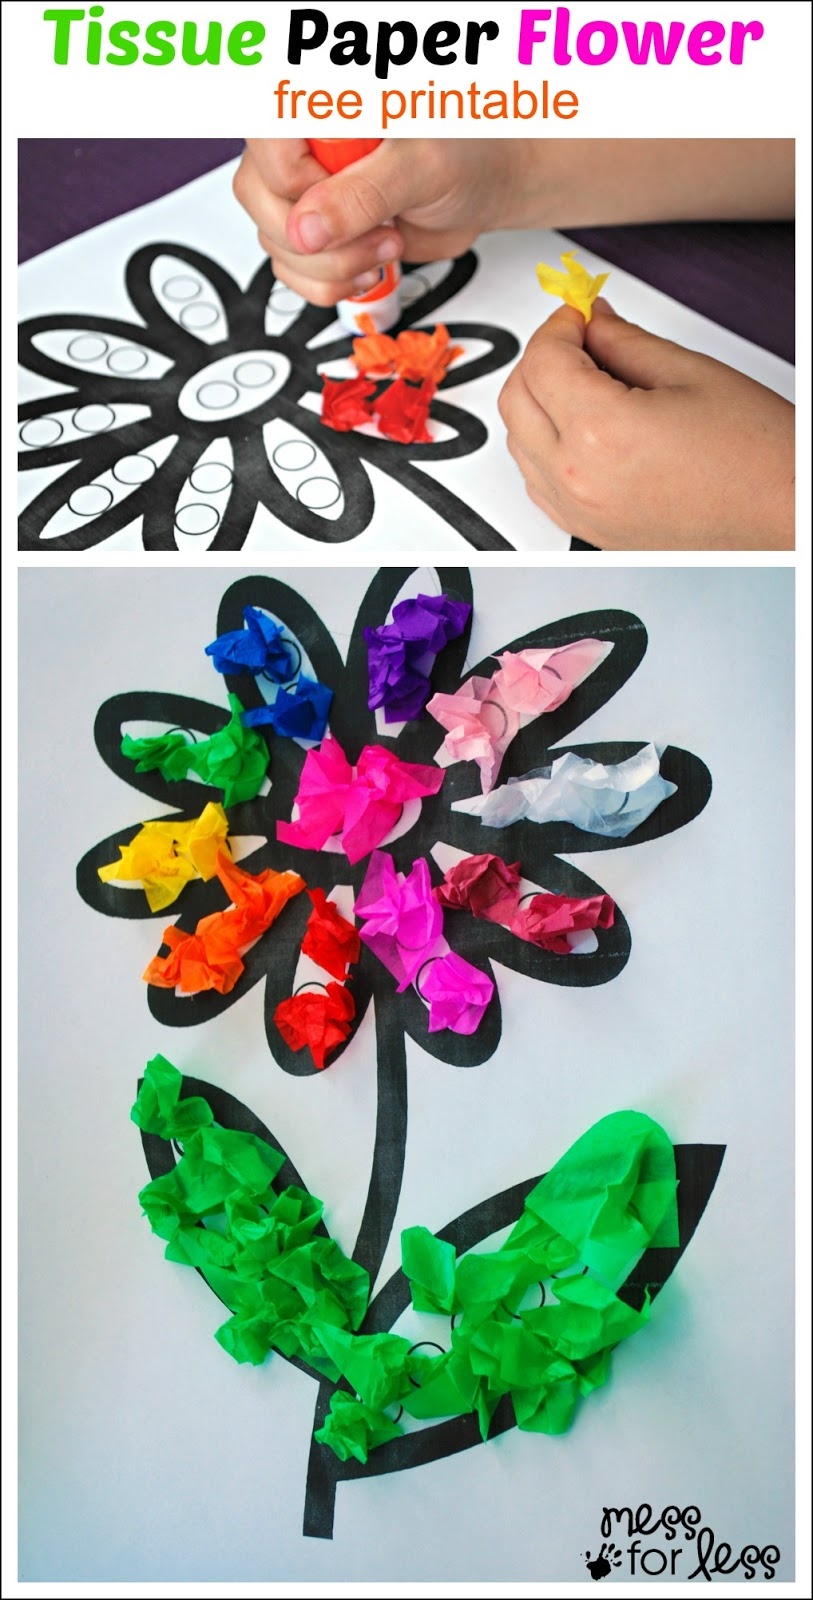 Tissue paper flower art activity mess for less tissue paper flower art activity jeuxipadfo Choice Image